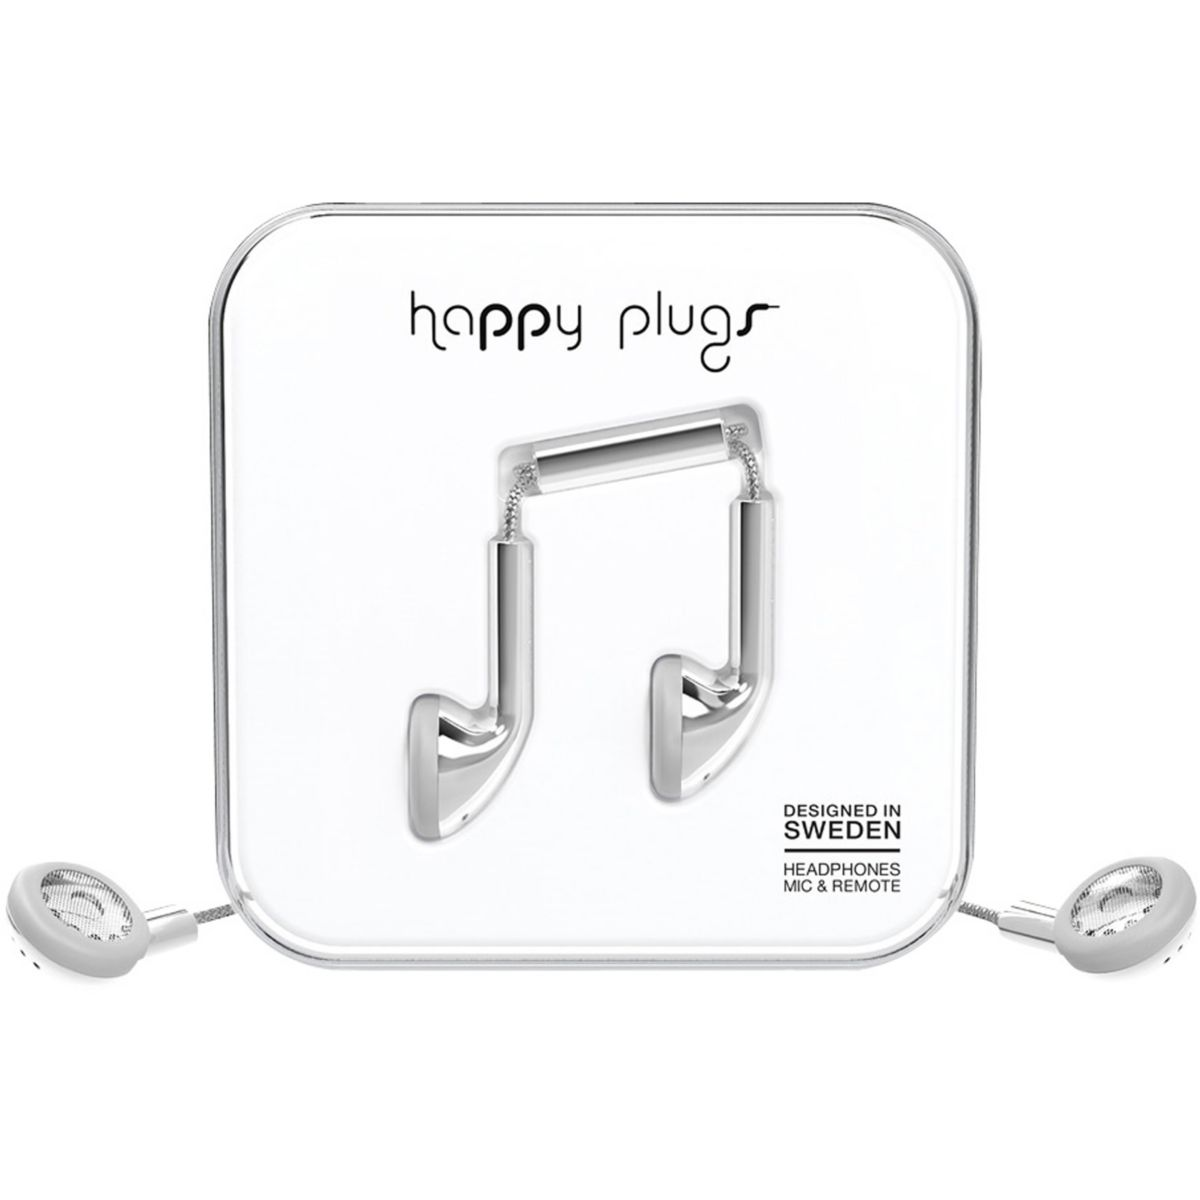 Ecouteurs avec micro happy plugs deluxe edition earbud silver ...